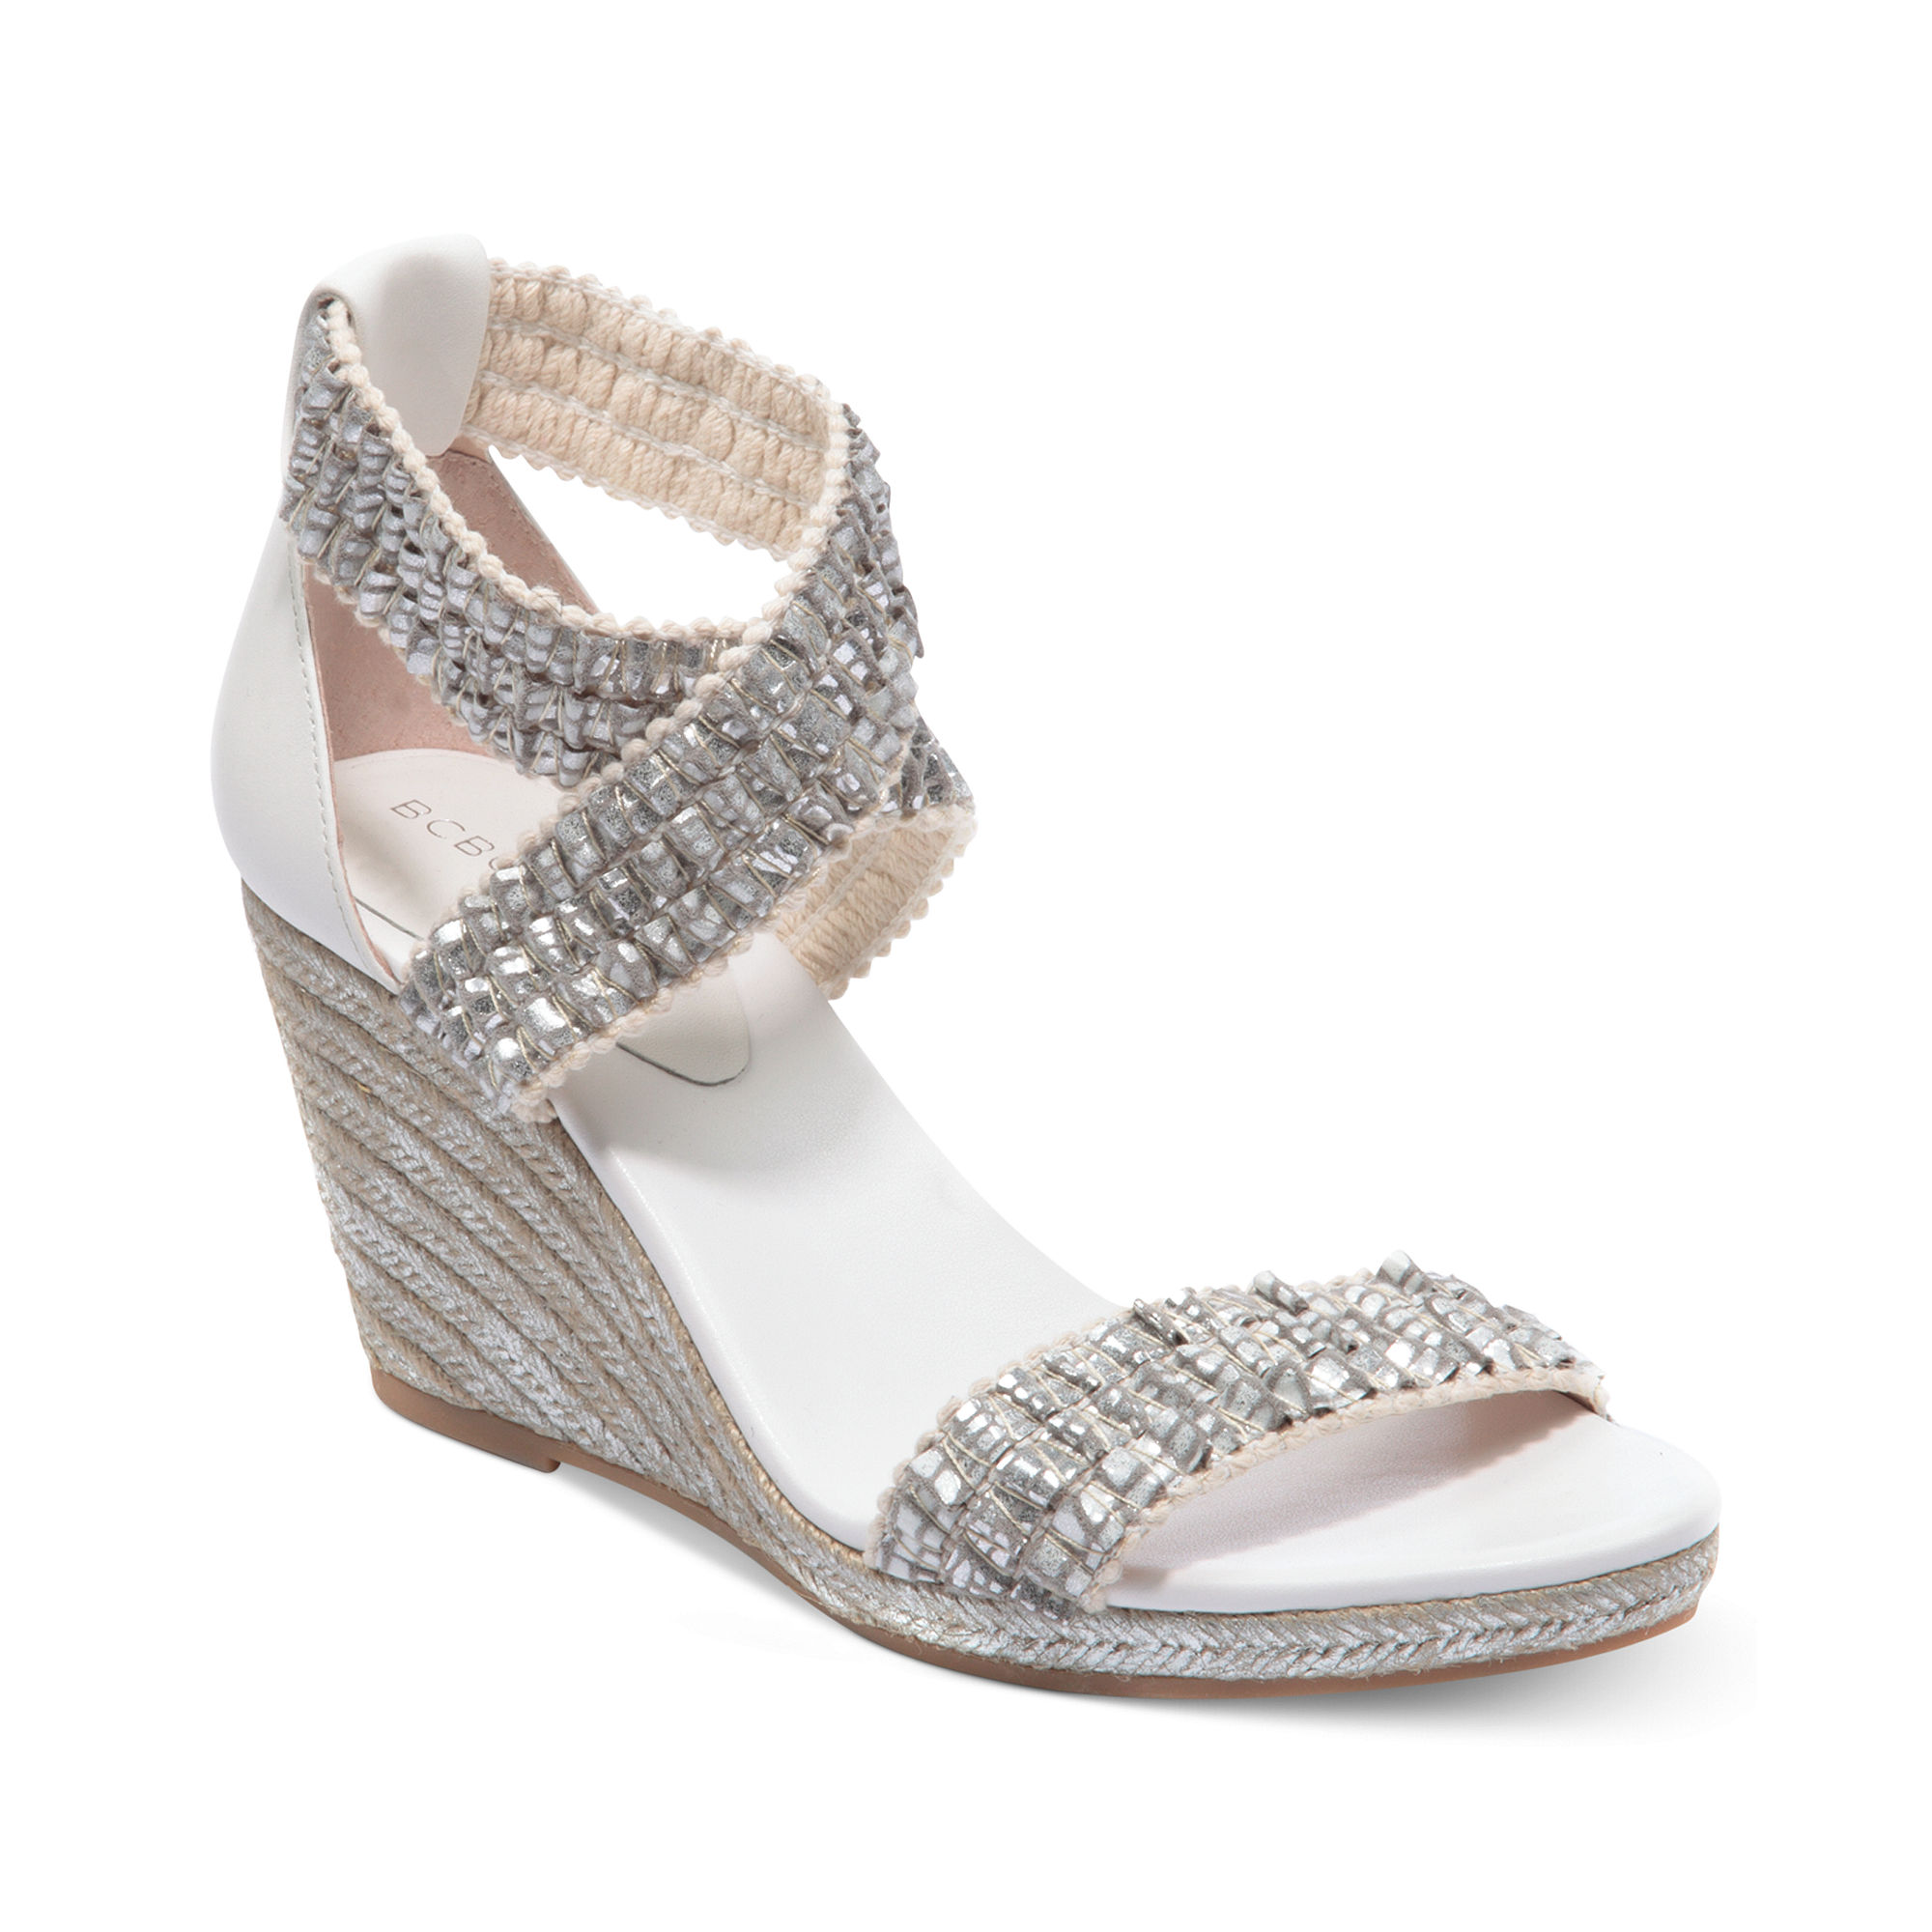 Bcbgeneration Barca Platform Wedge Sandals In Silver